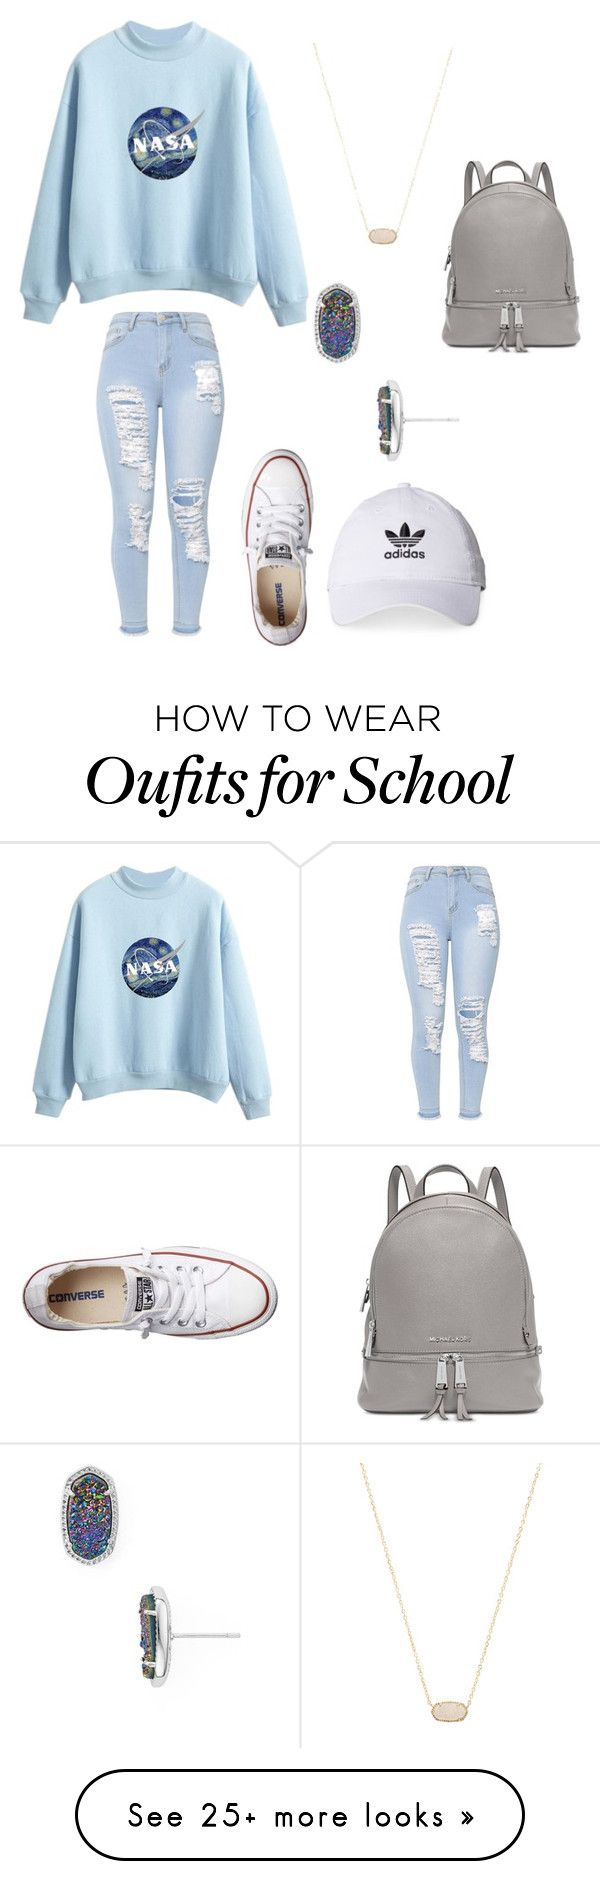 """Back to school winter"" by mckinleyelwick on Polyvore featuring Converse, adidas, Kendra Scott and Michael Kors"